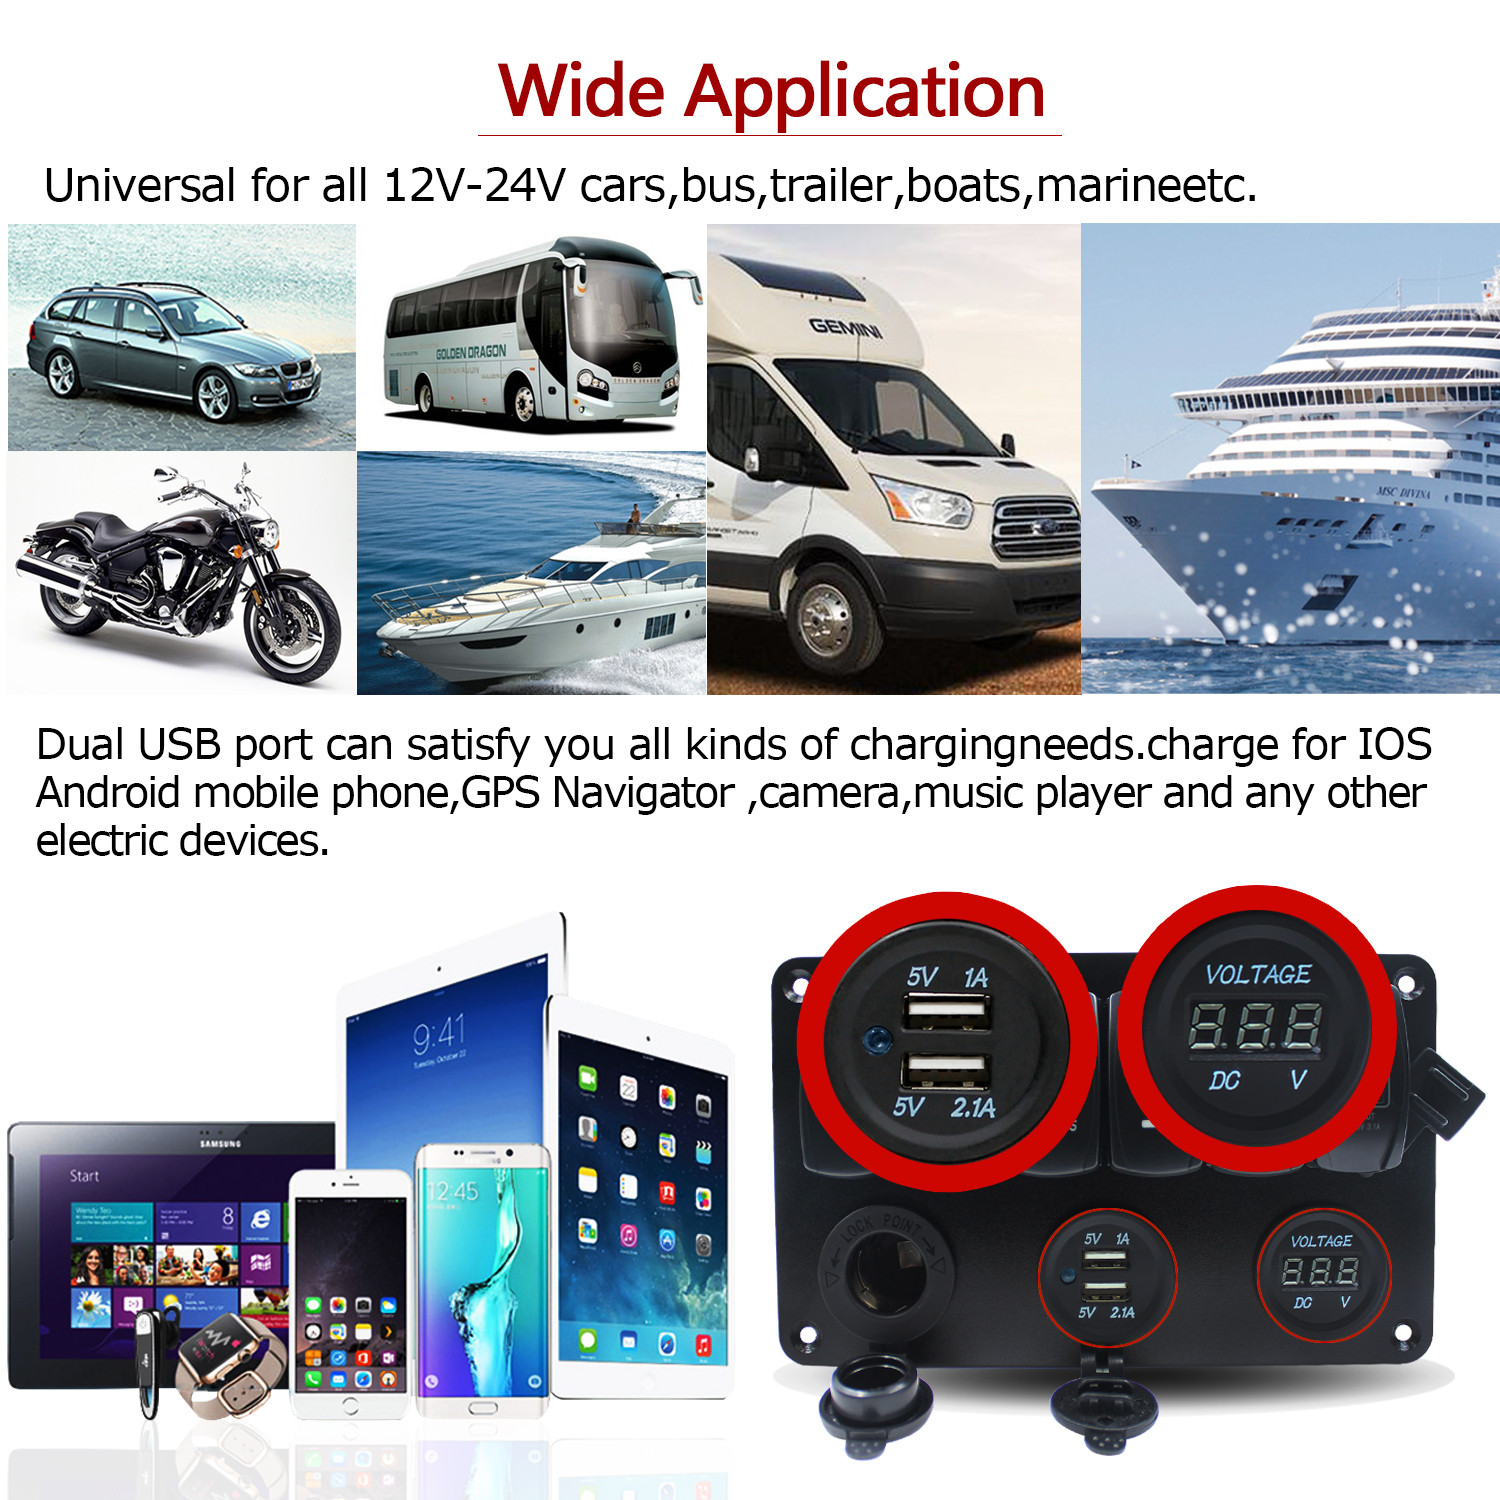 12v 24v 6 Gang Led Rocker Switch Panel Dual Usb Car Charger Boat Wiring Easily Installed By Its Pre Wired Harness All In One Design That Controls Six Lightsthe Zombie Light Can Be Used To Control Any Vehicle Electrical